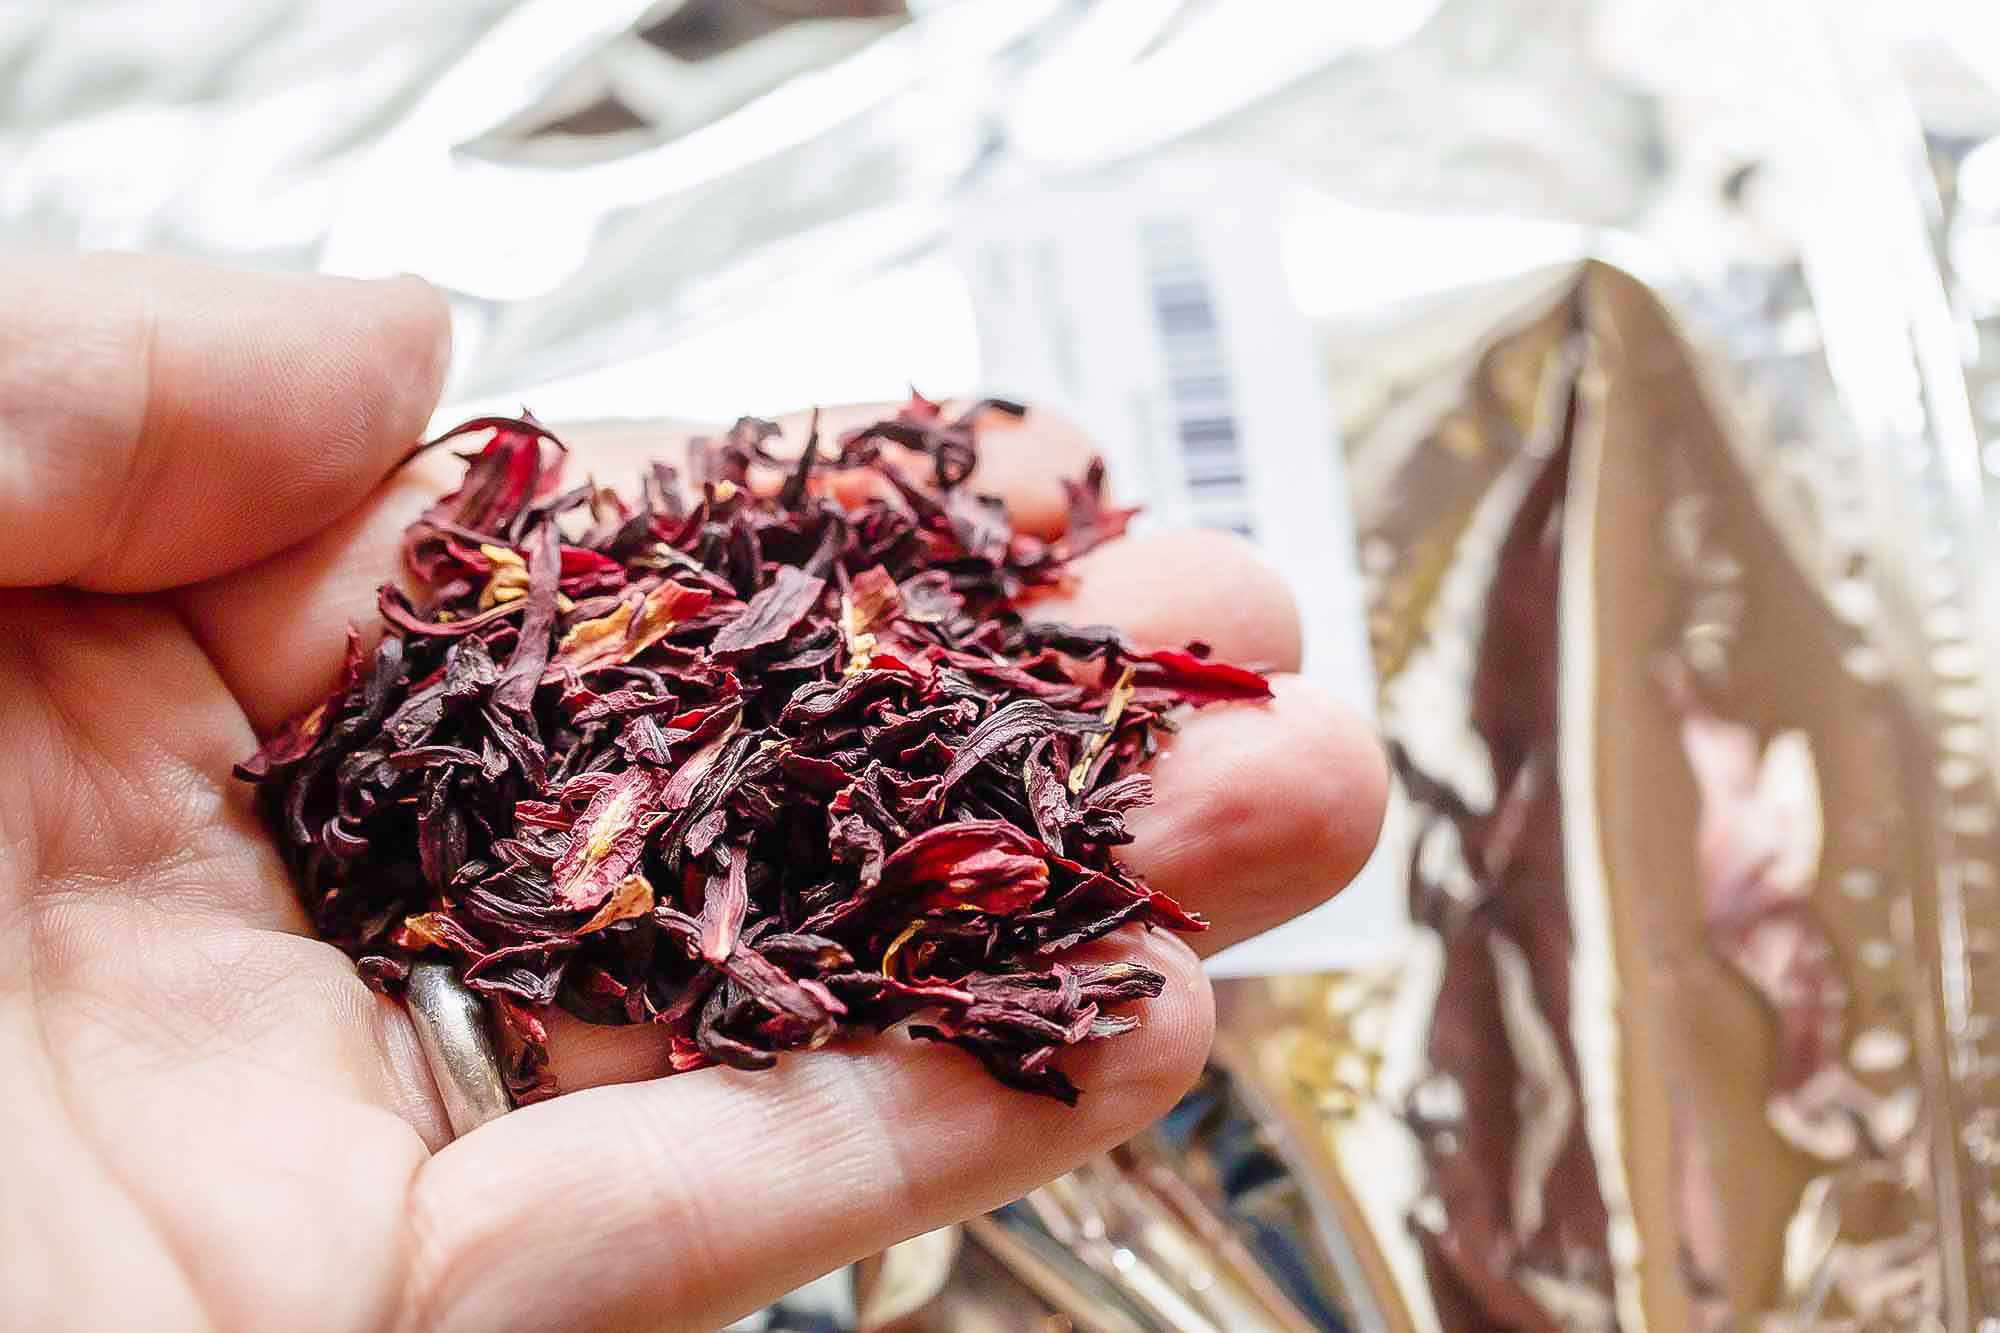 Dried hibiscus is displayed on the palm of a hand. The hand is held above the plastic containers it came in.